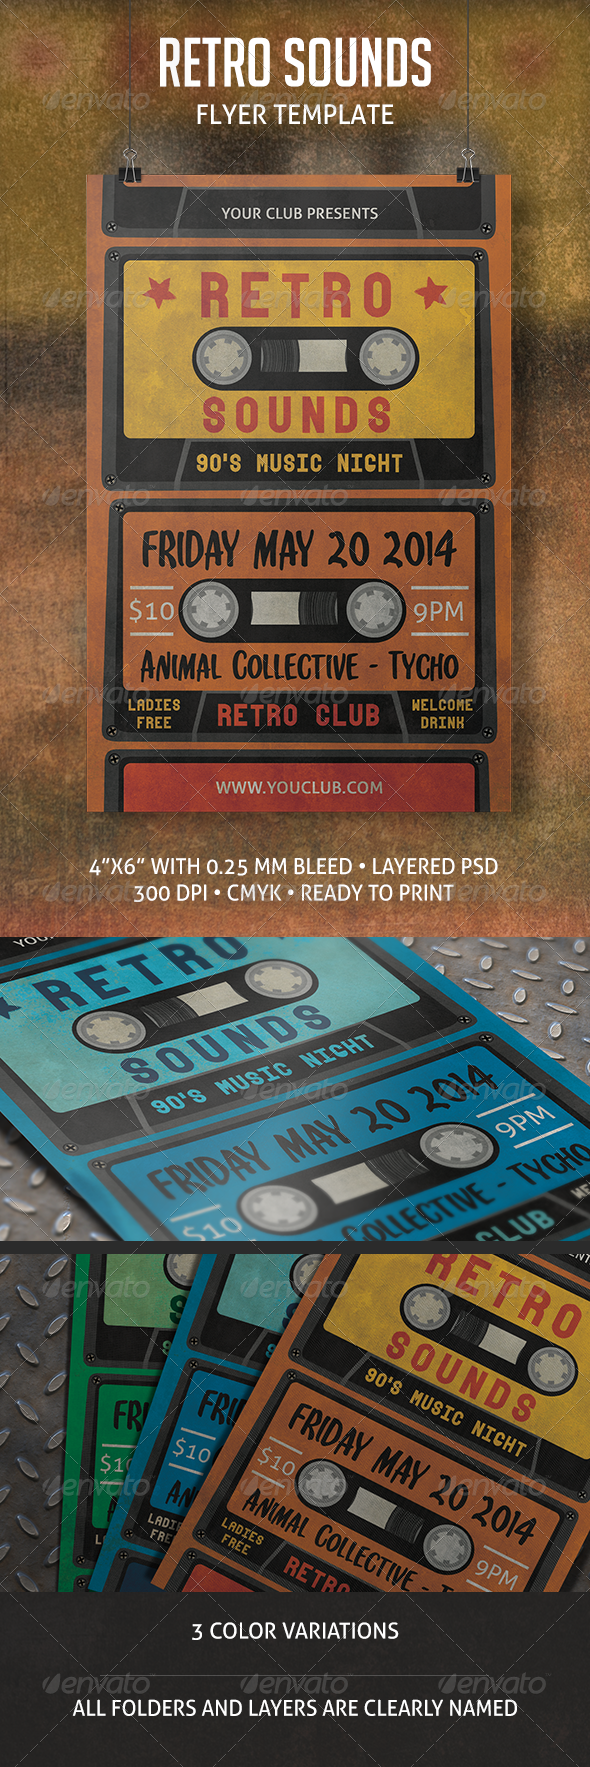 GraphicRiver Retro Sounds Flyer 7035493